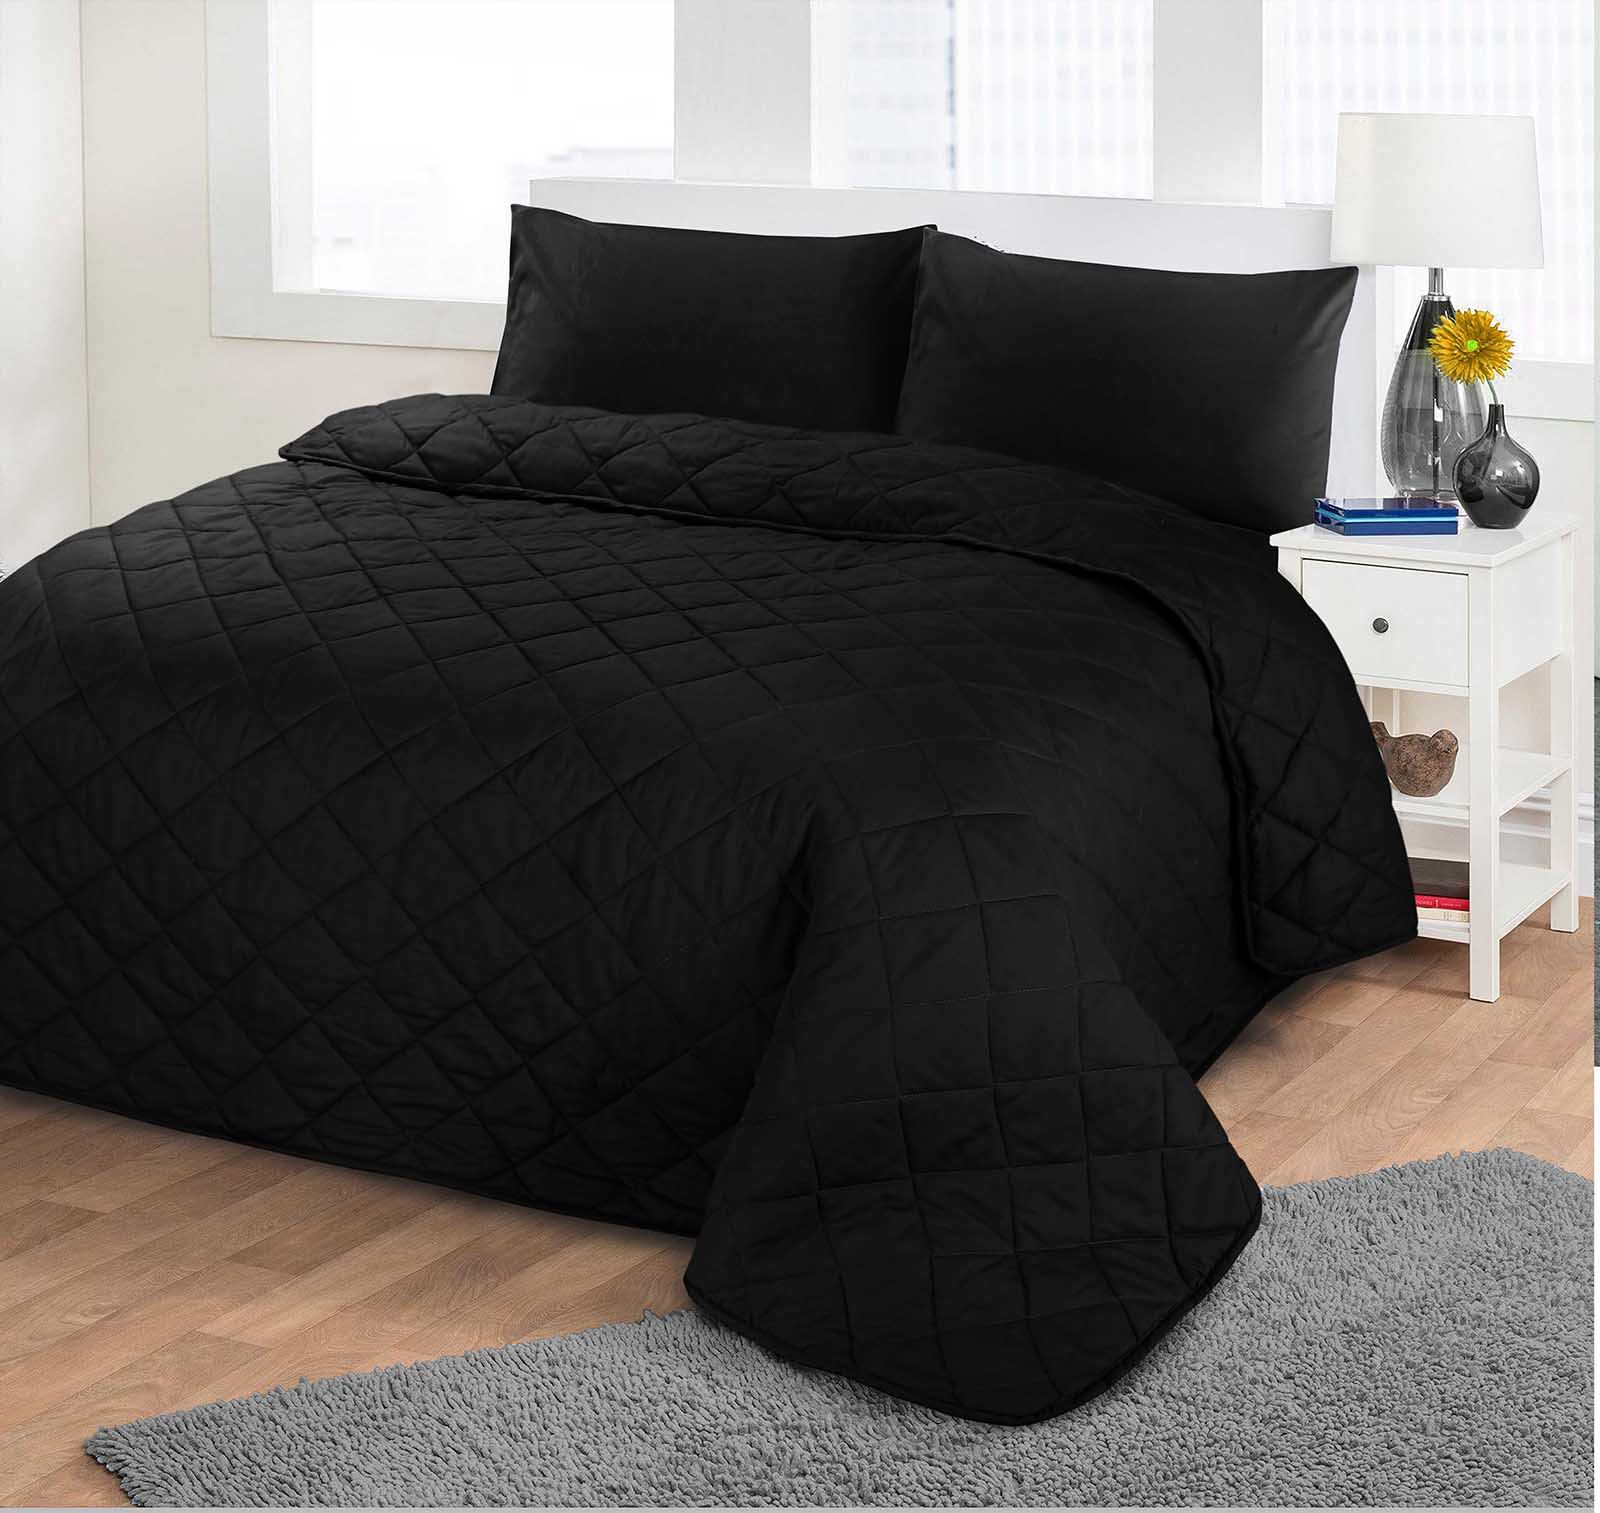 duvet co set cover size samania black bedding luxury quilt king queen